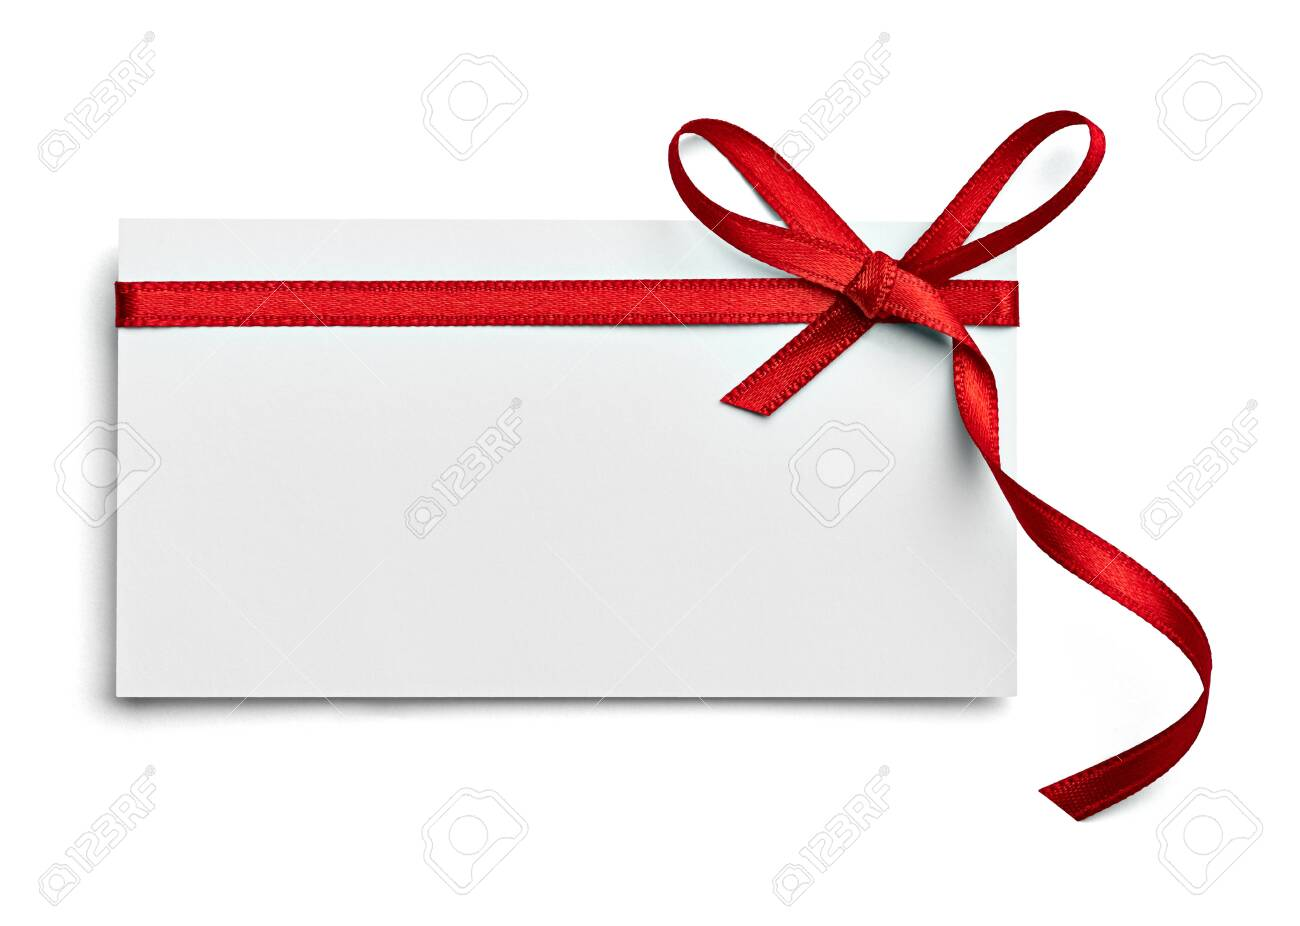 close up of a note card with red ribbon bow on white background - 124543995